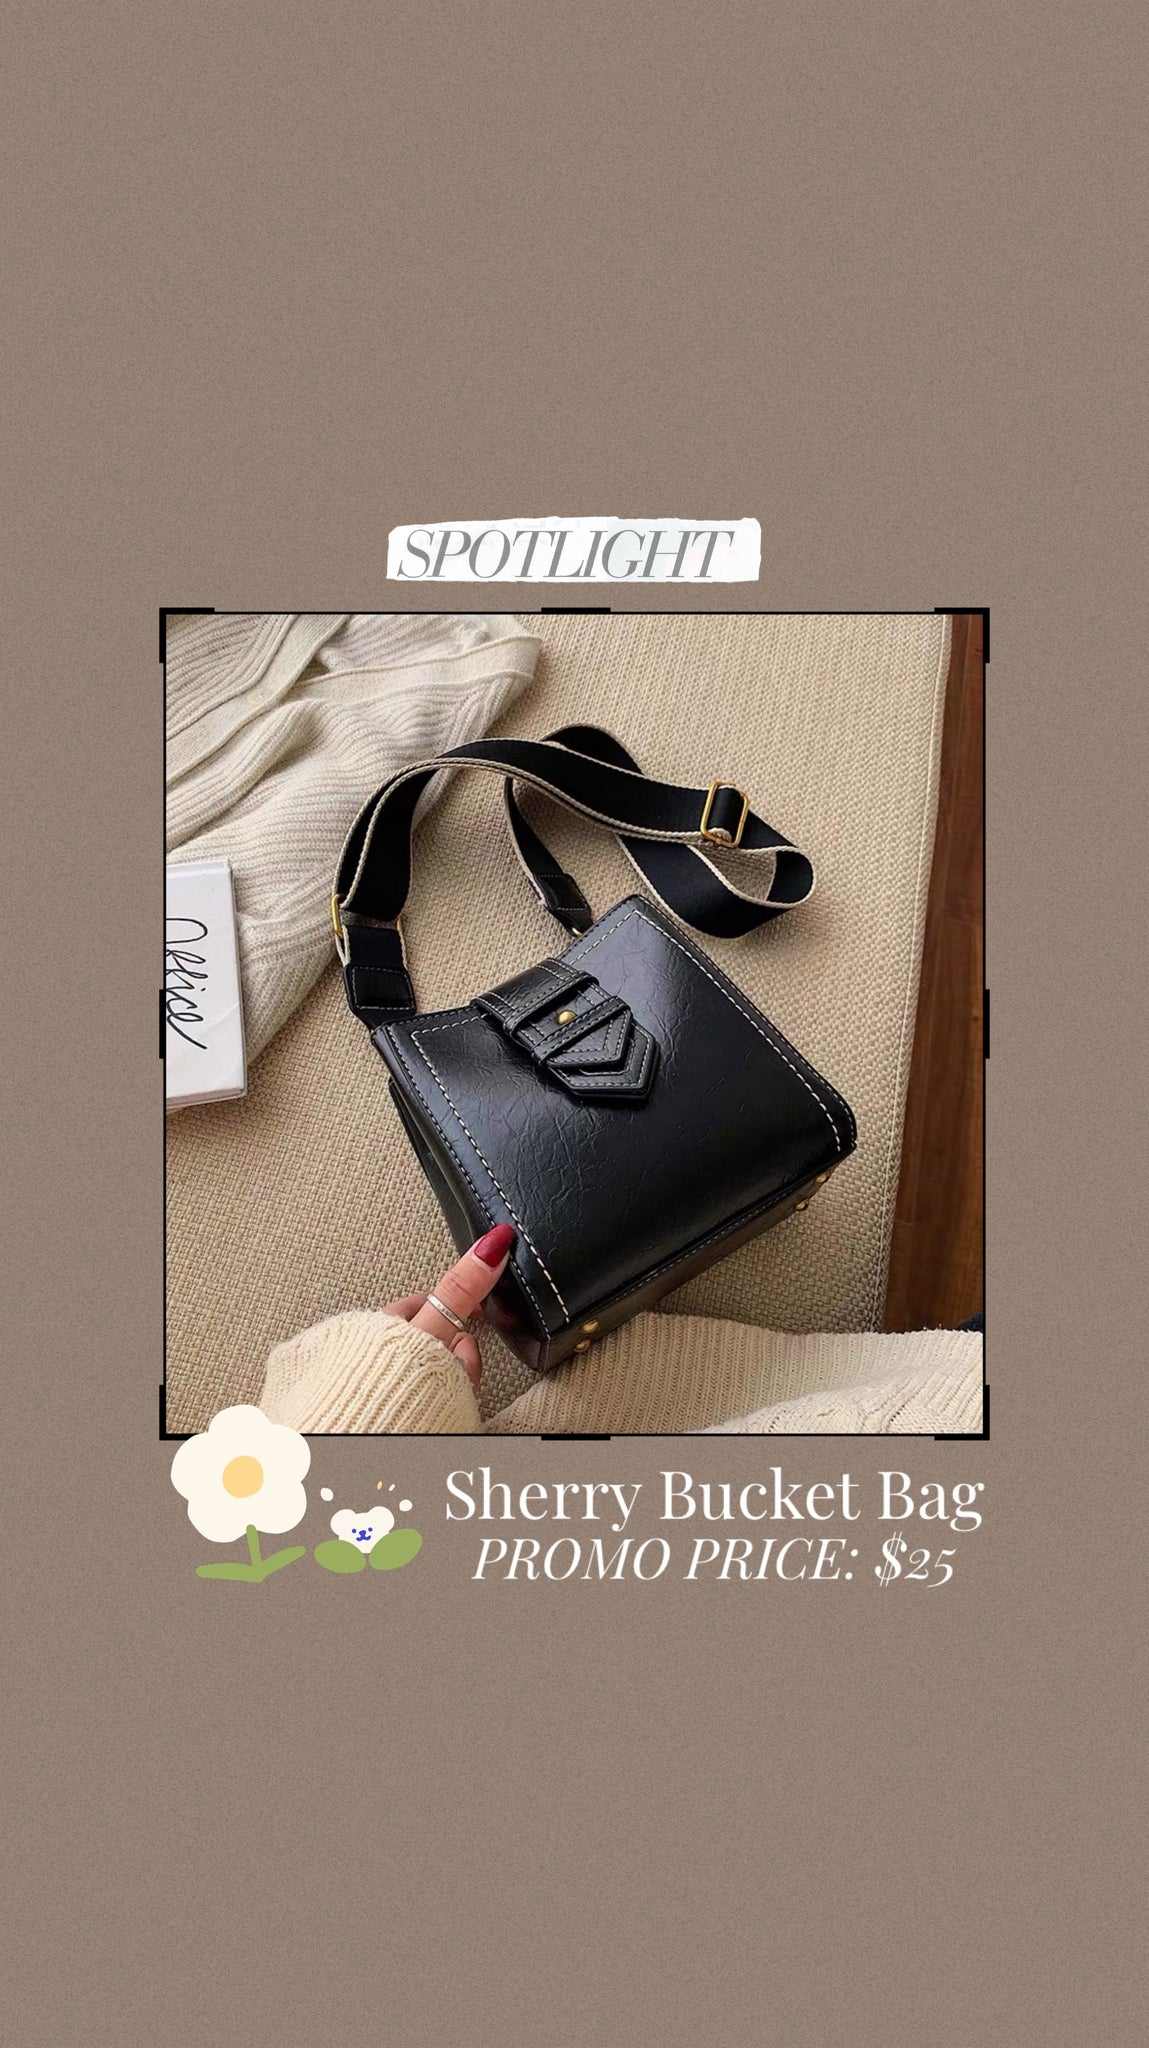 Sherry Bucket Bag